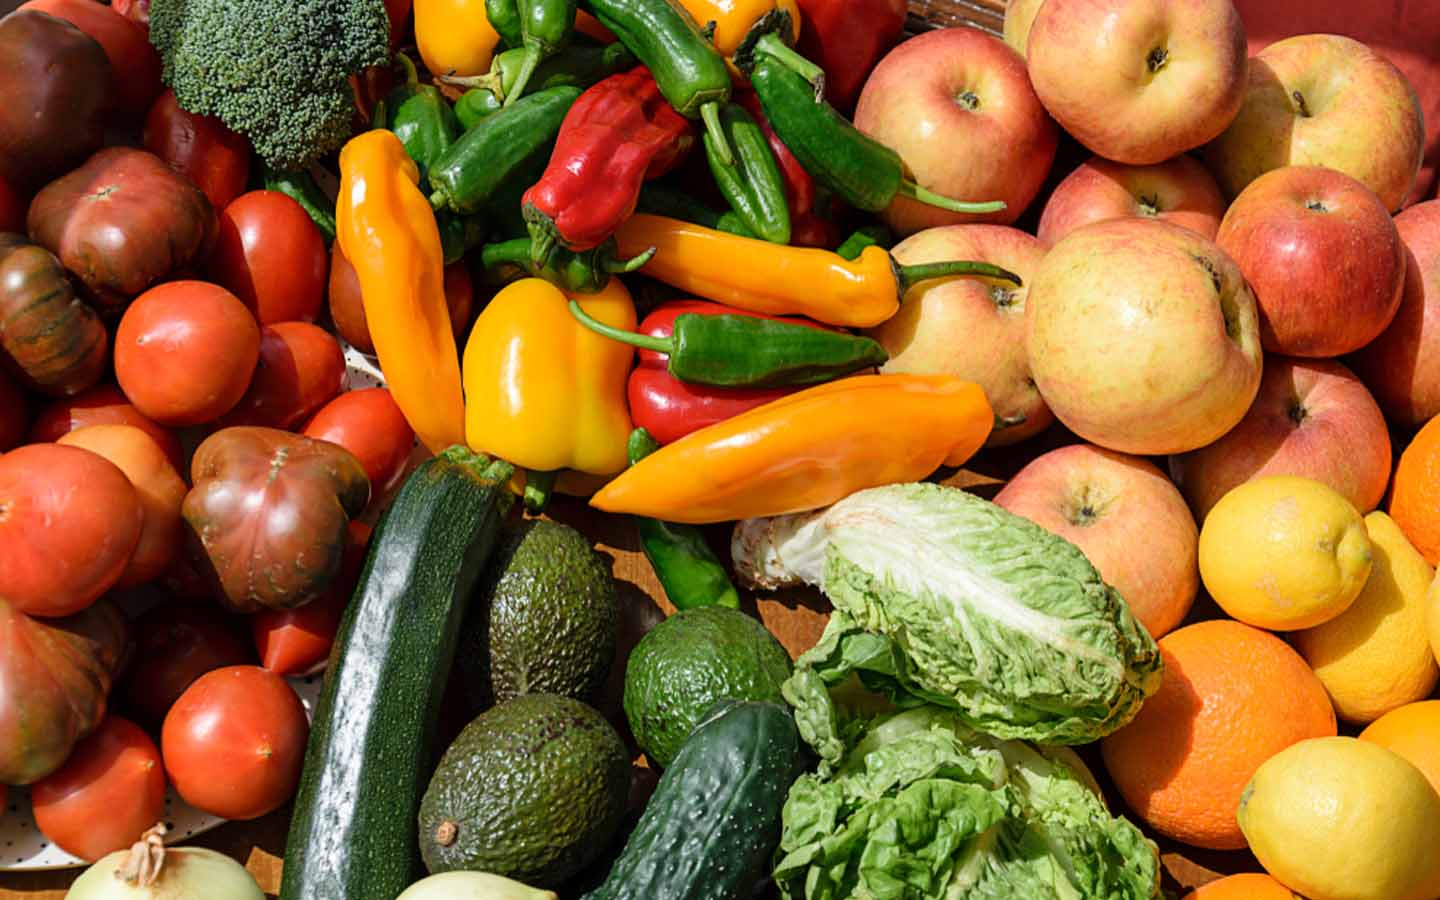 The Central fruits and vegetable market has a large variety of fresh produce